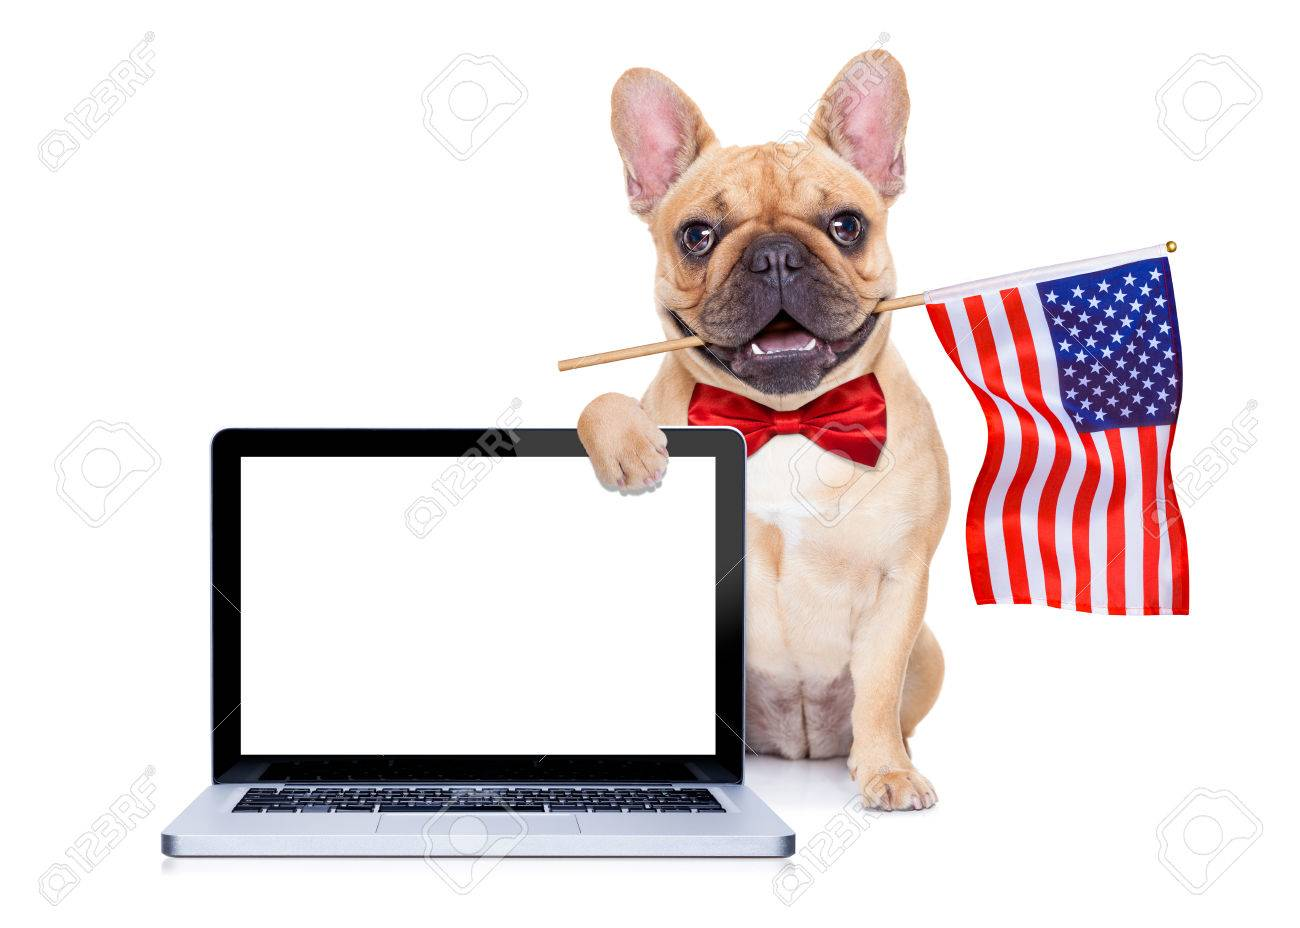 french bulldog  dog waving a flag of usa on independence day on 4th of july Stock Photo - 41039312